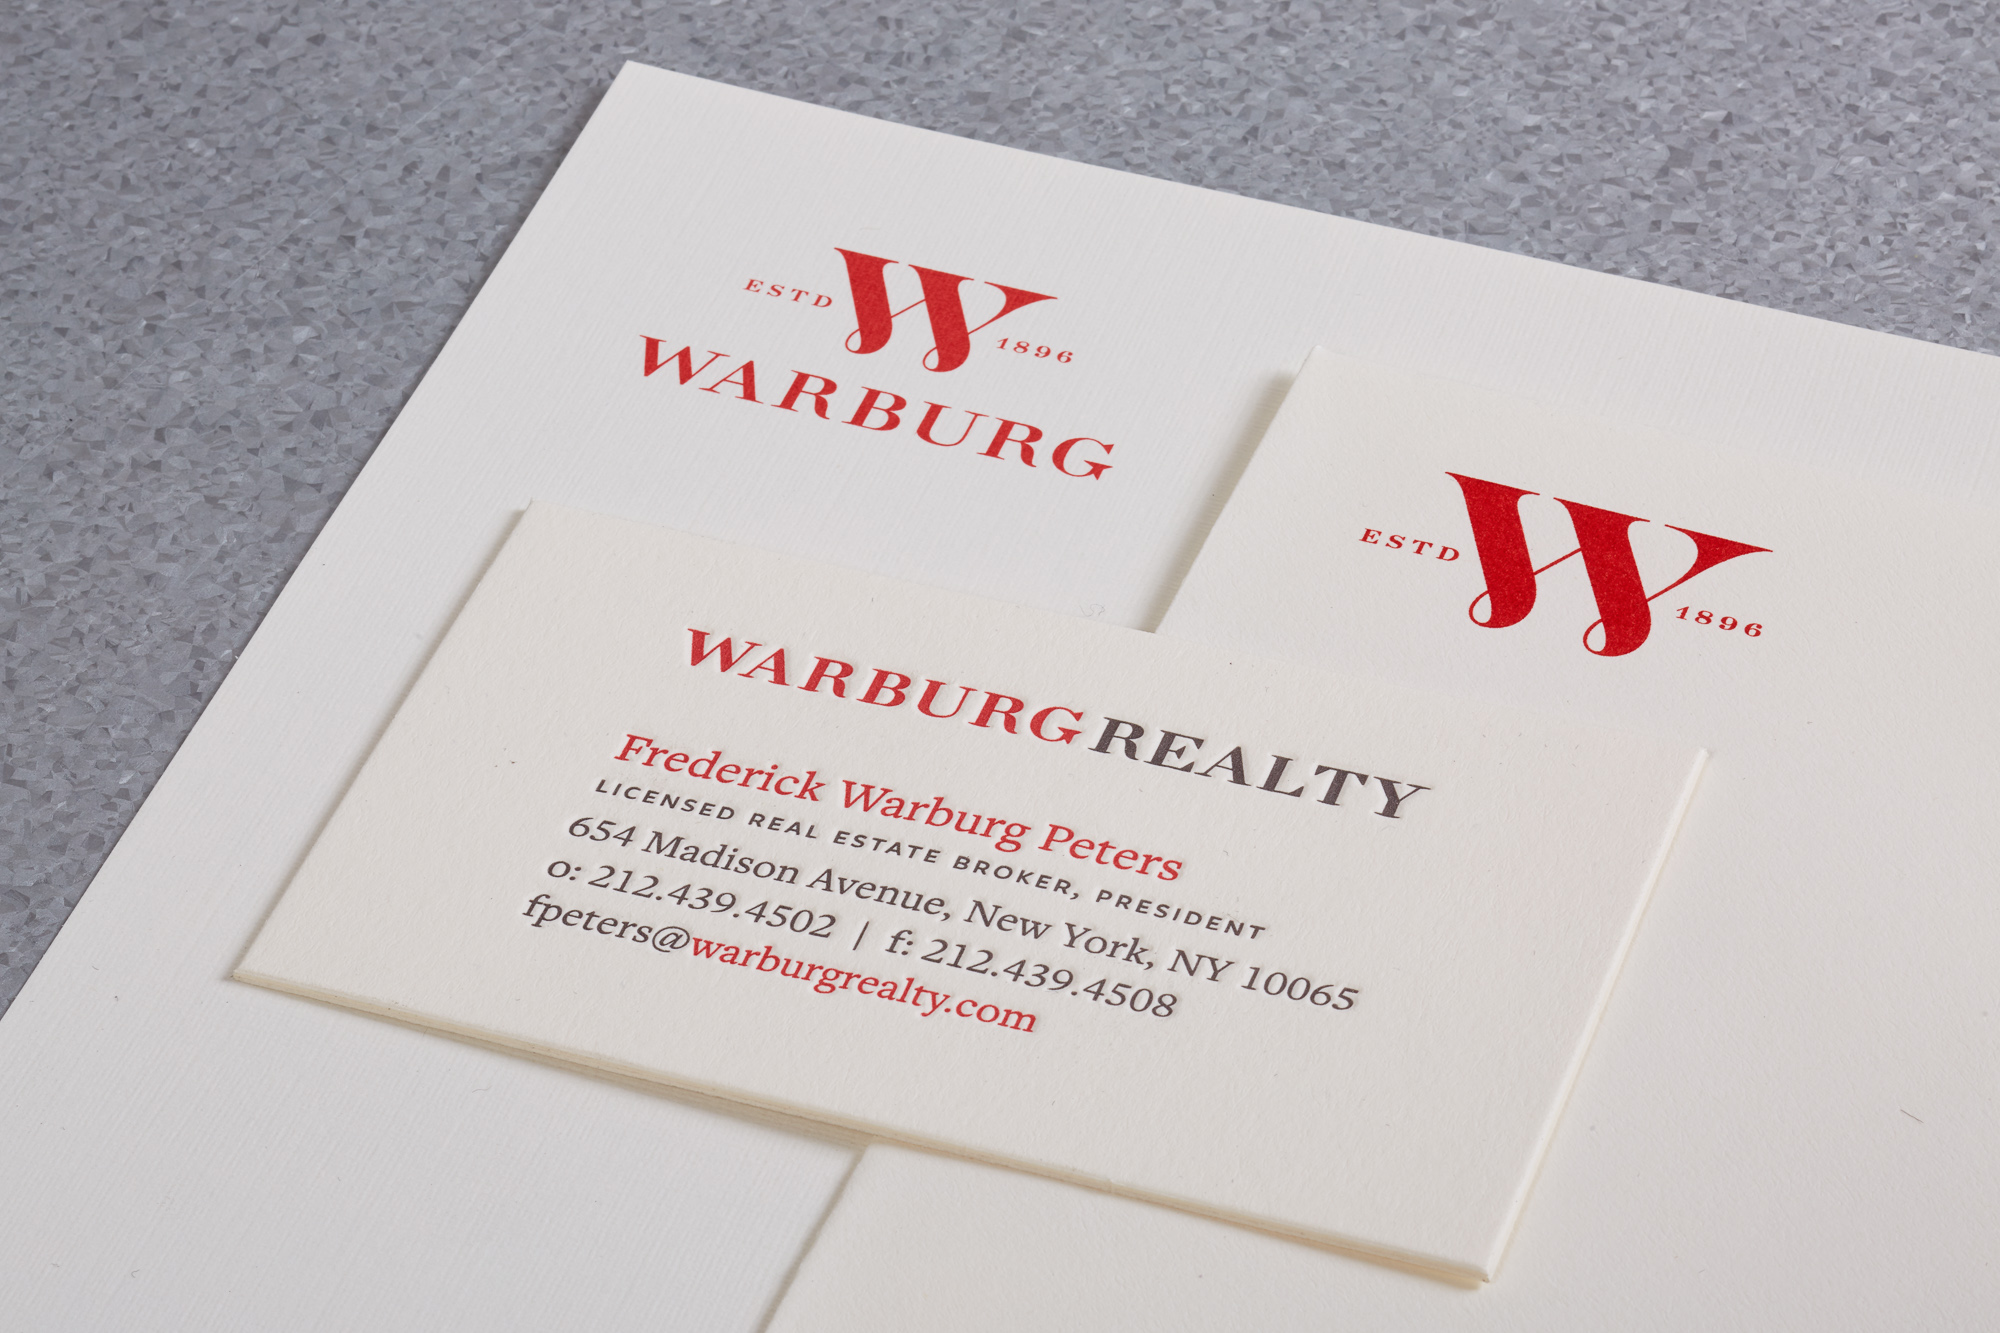 High-End Real Estate Companies Corporate Identity Stationery Ensemble